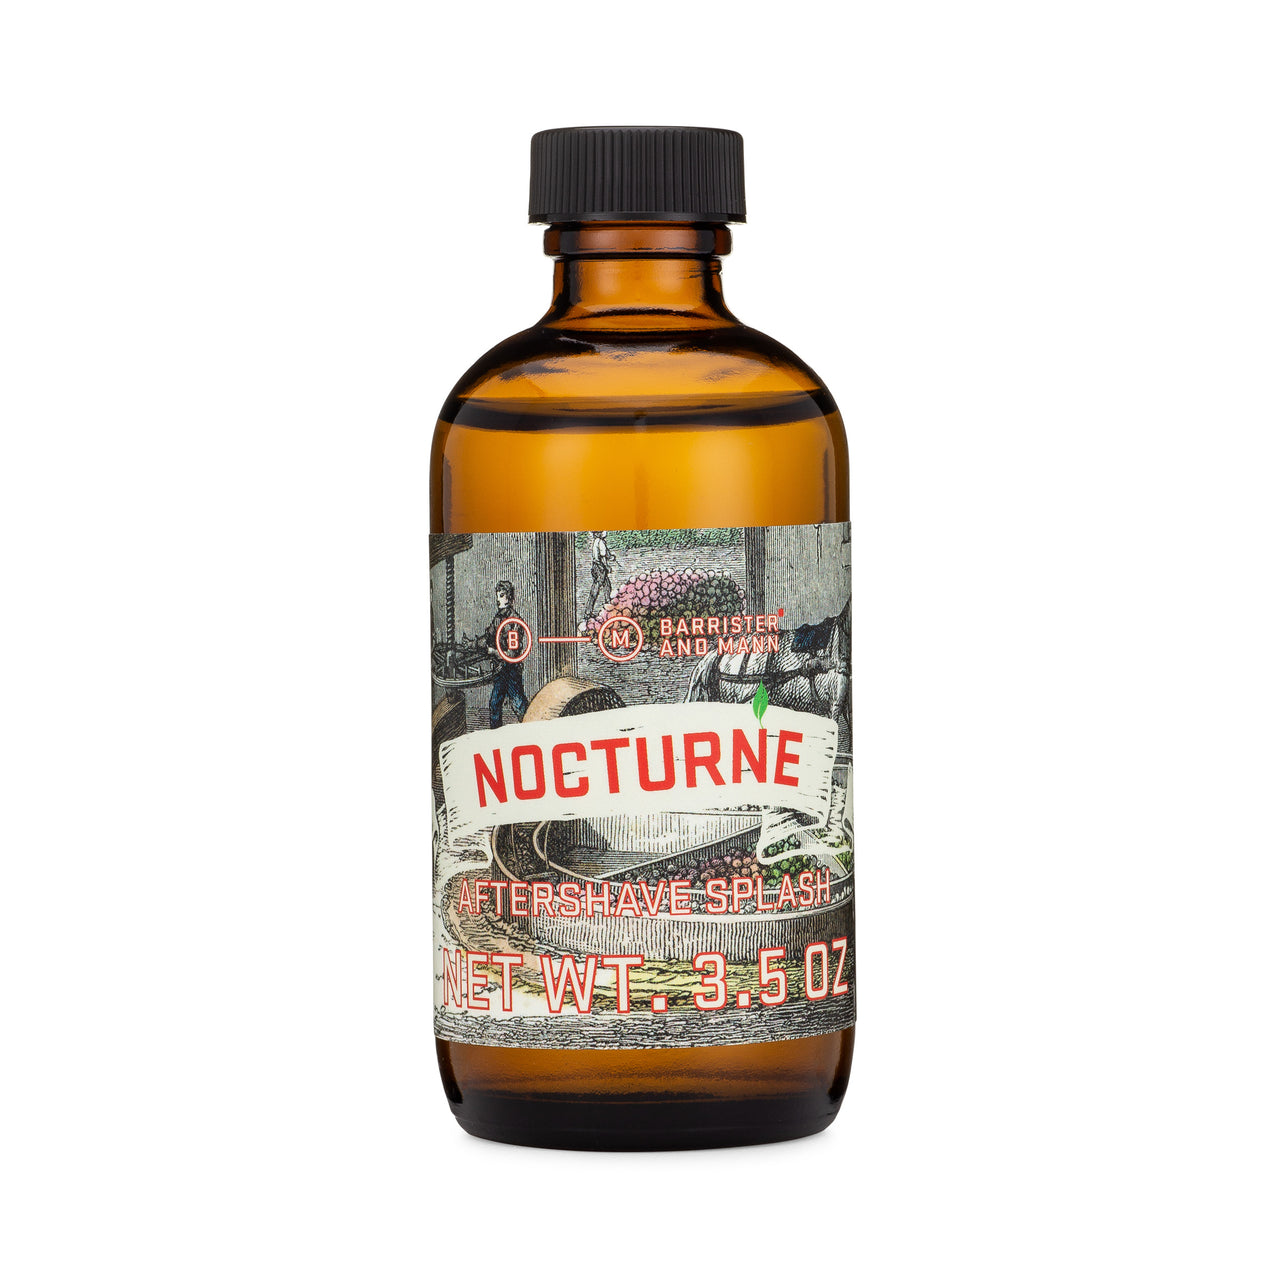 Barrister and Mann Nocturne Alcohol Aftershave Splash